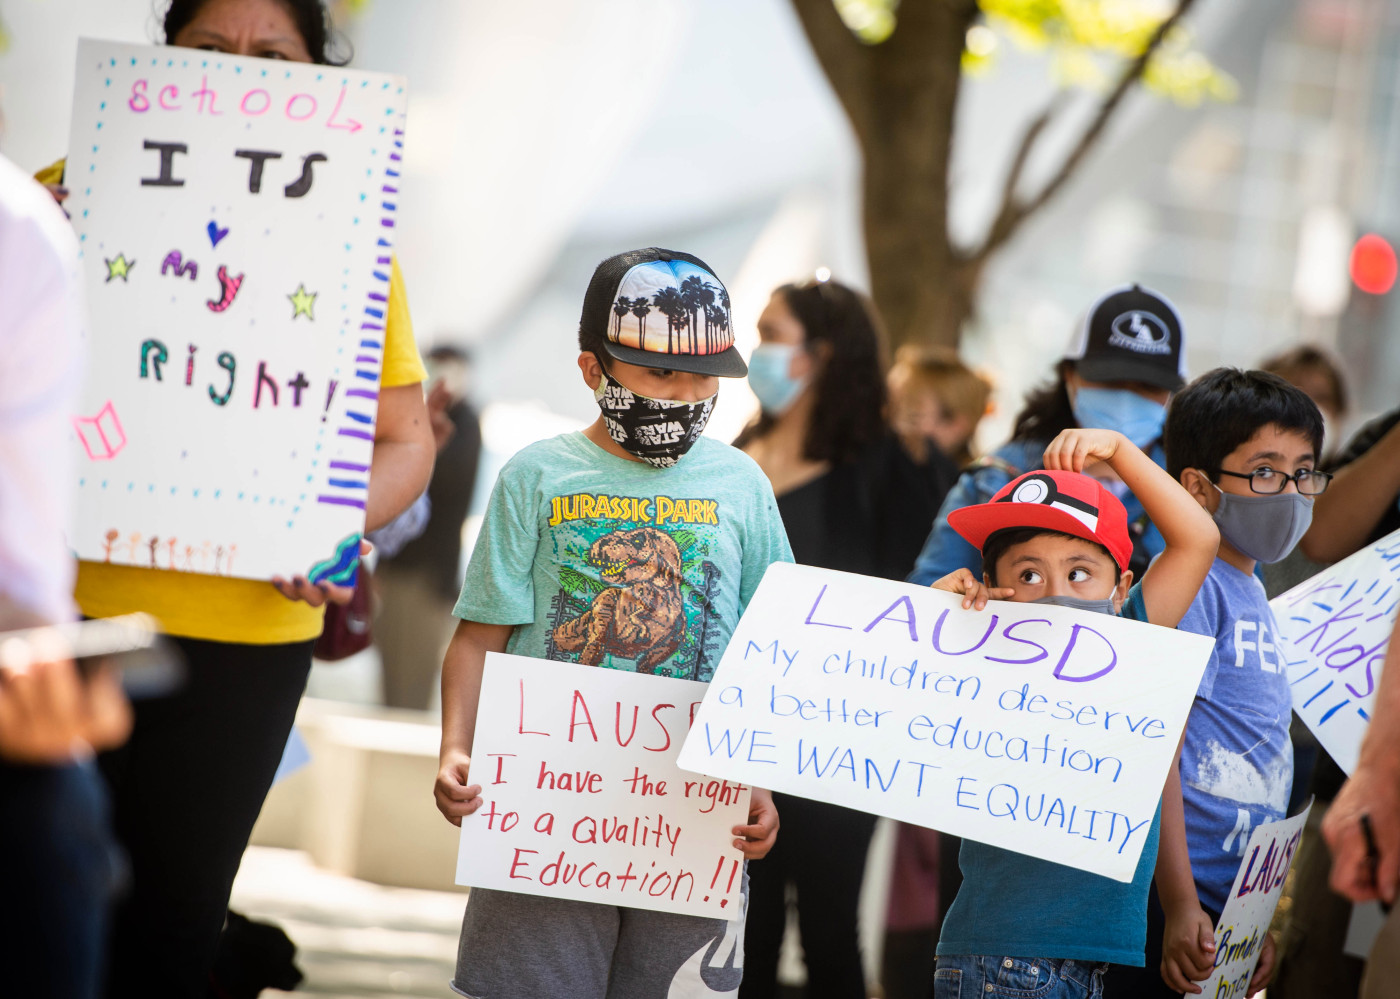 Parents sue LAUSD over distance learning plan